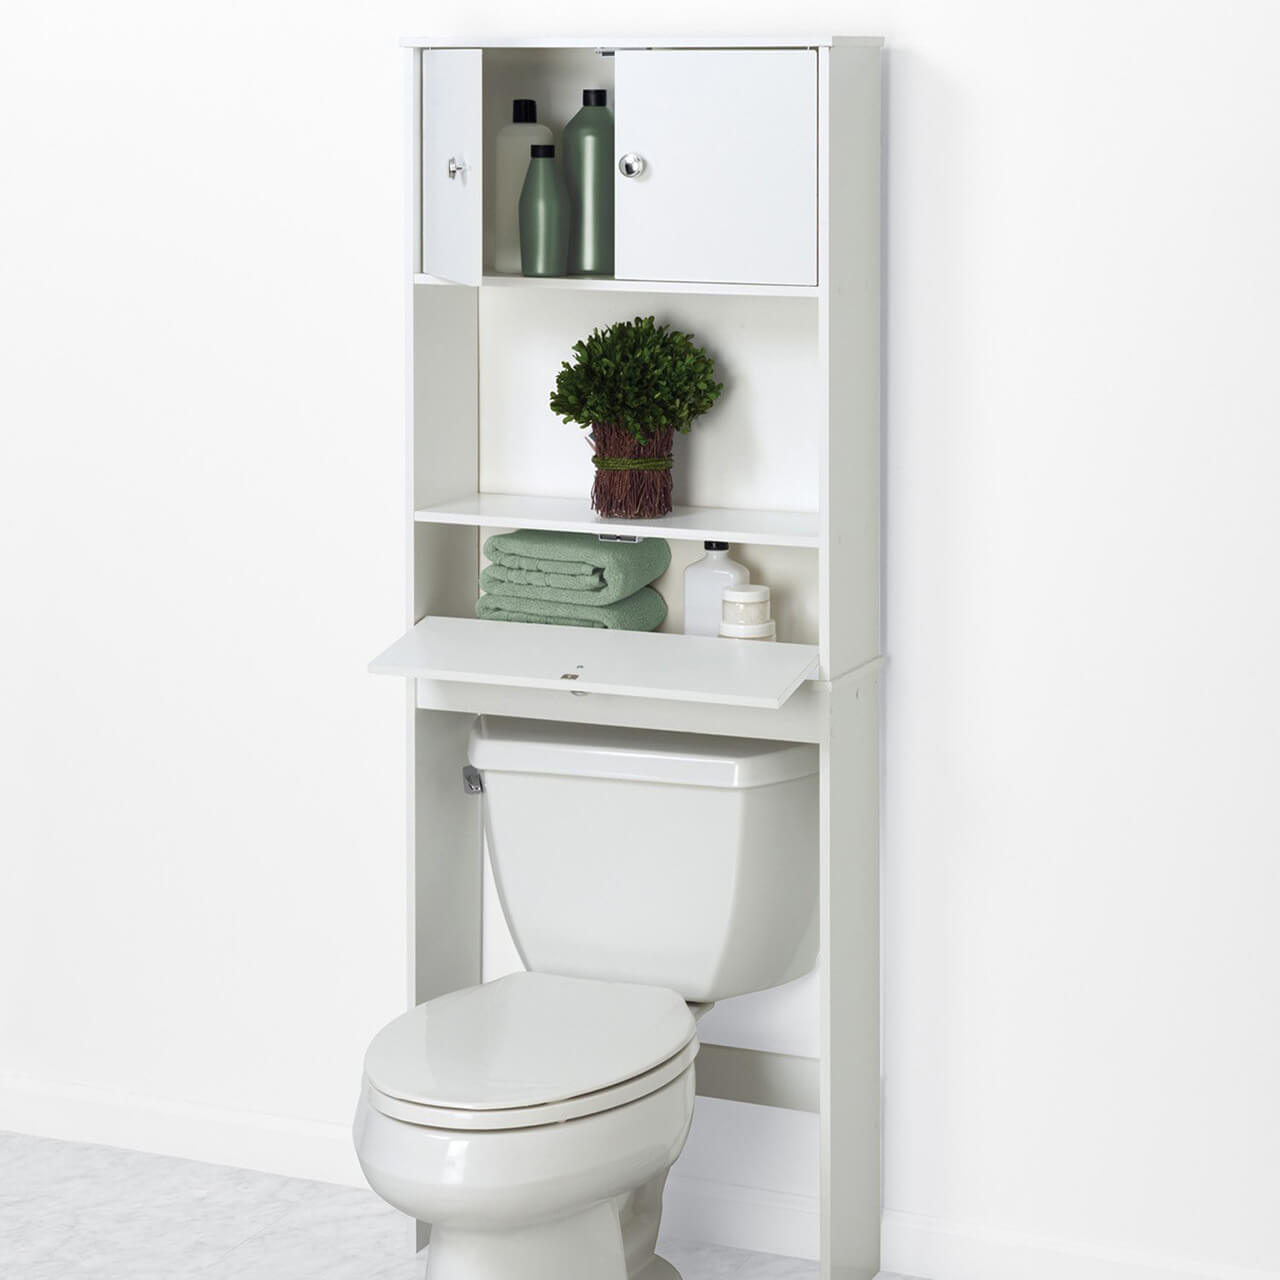 Zenna Home Drop Door Bathroom Spacesaver